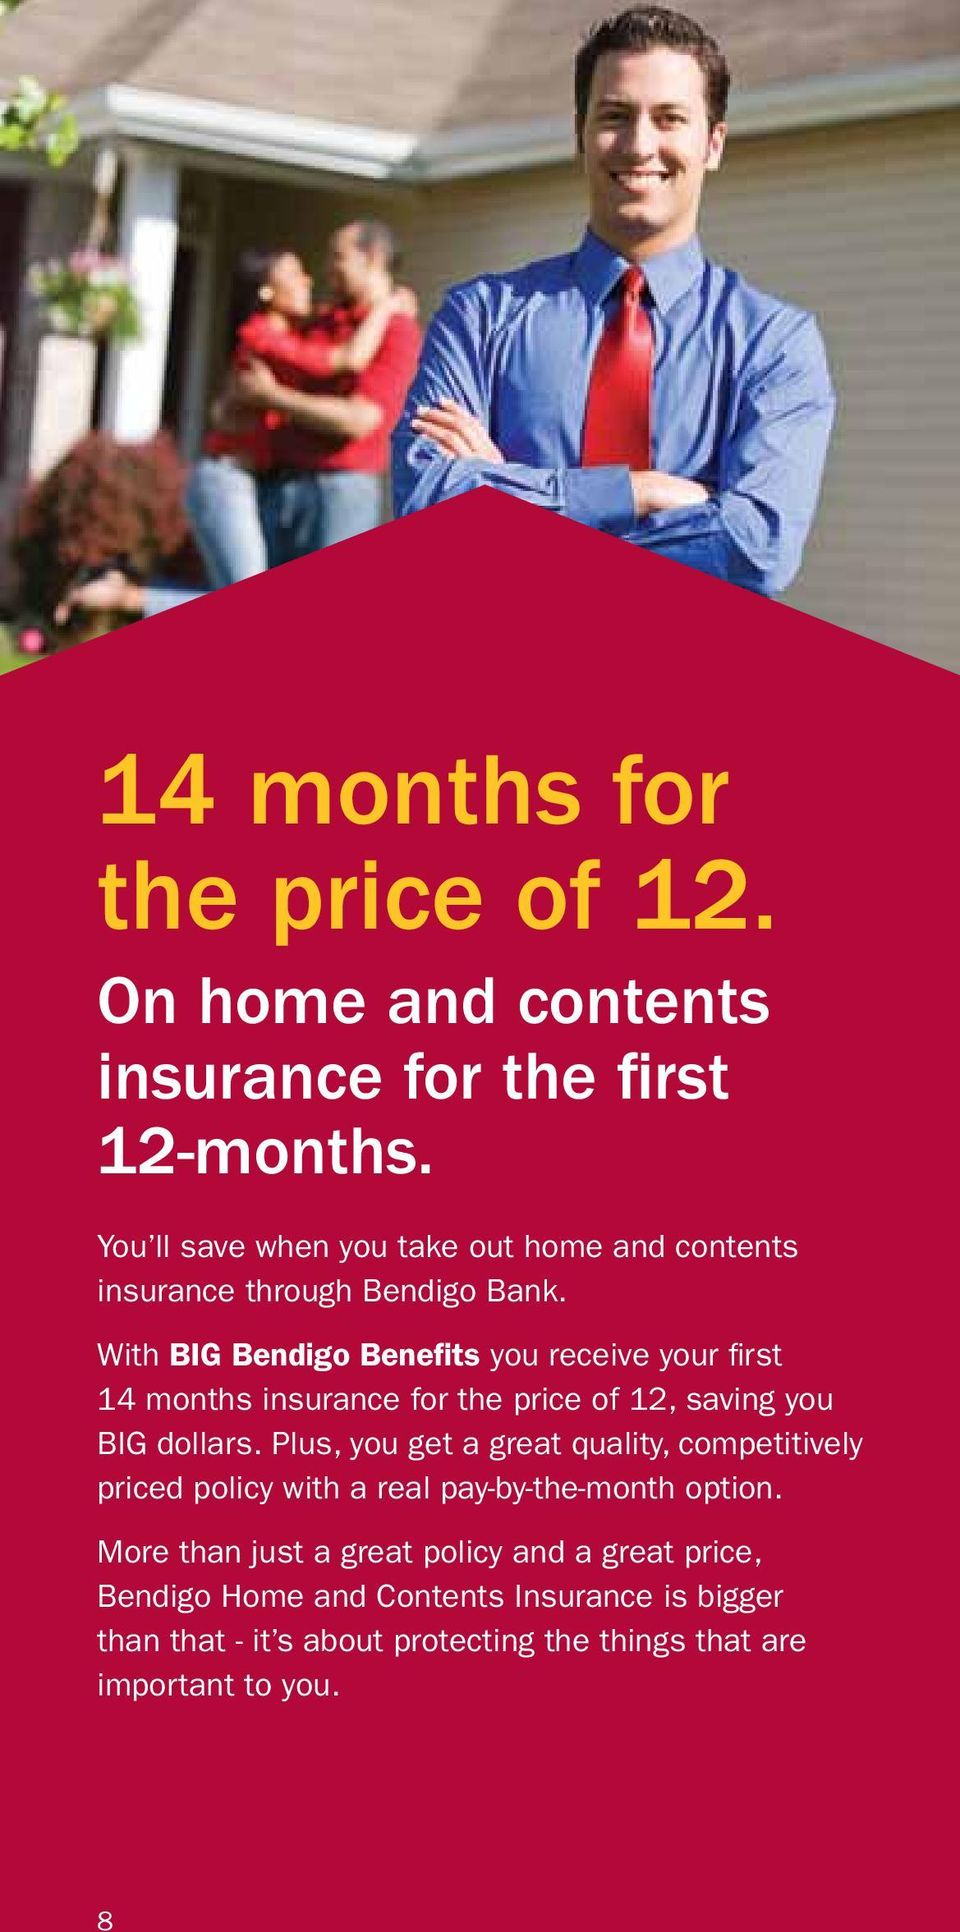 With BIG Bendigo Benefits you receive your first 14 months insurance for the price of 12, saving you BIG dollars.